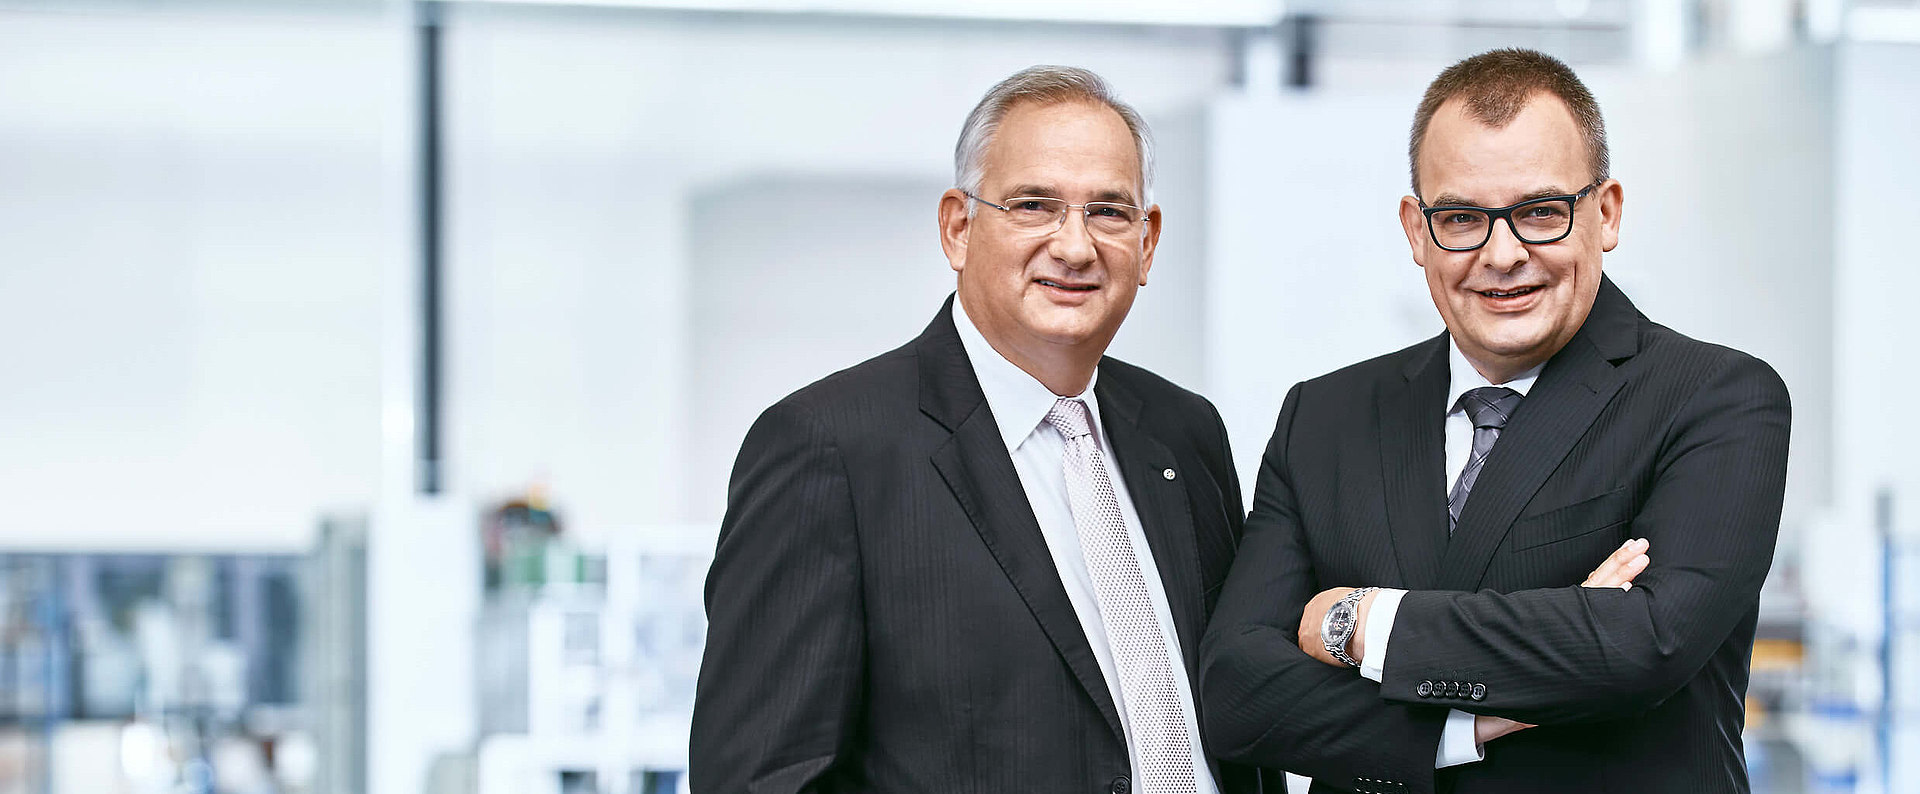 Thomas Herr and Bernd Neugart are the General Managers of Neugart GmbH